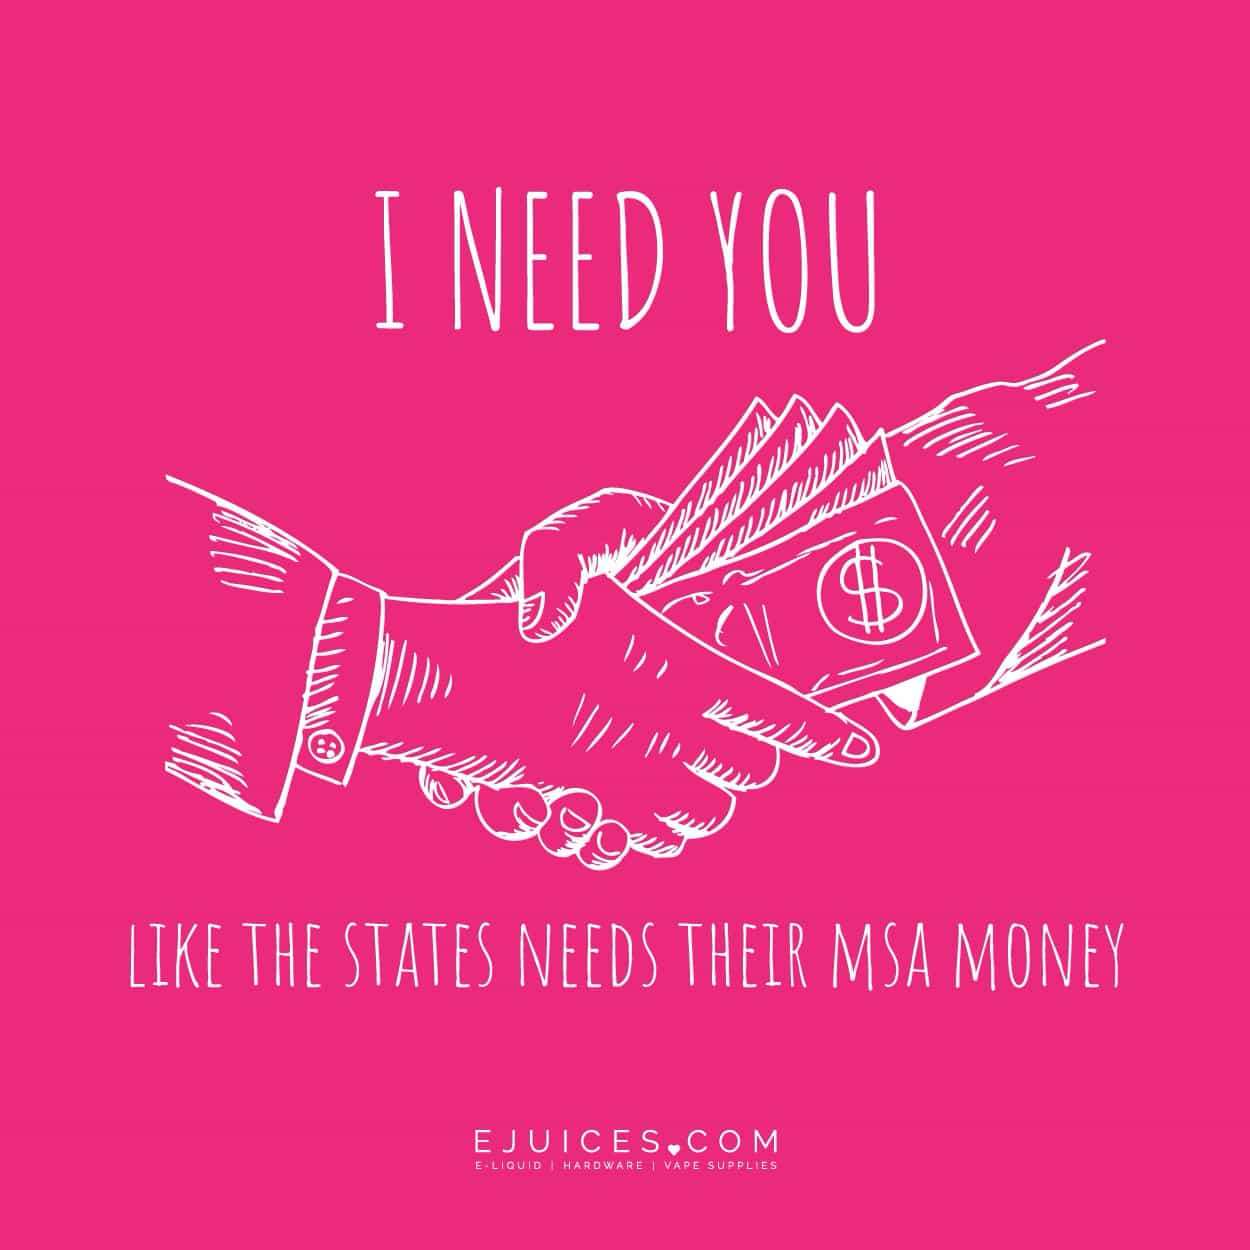 I need you like the states need their MSA money